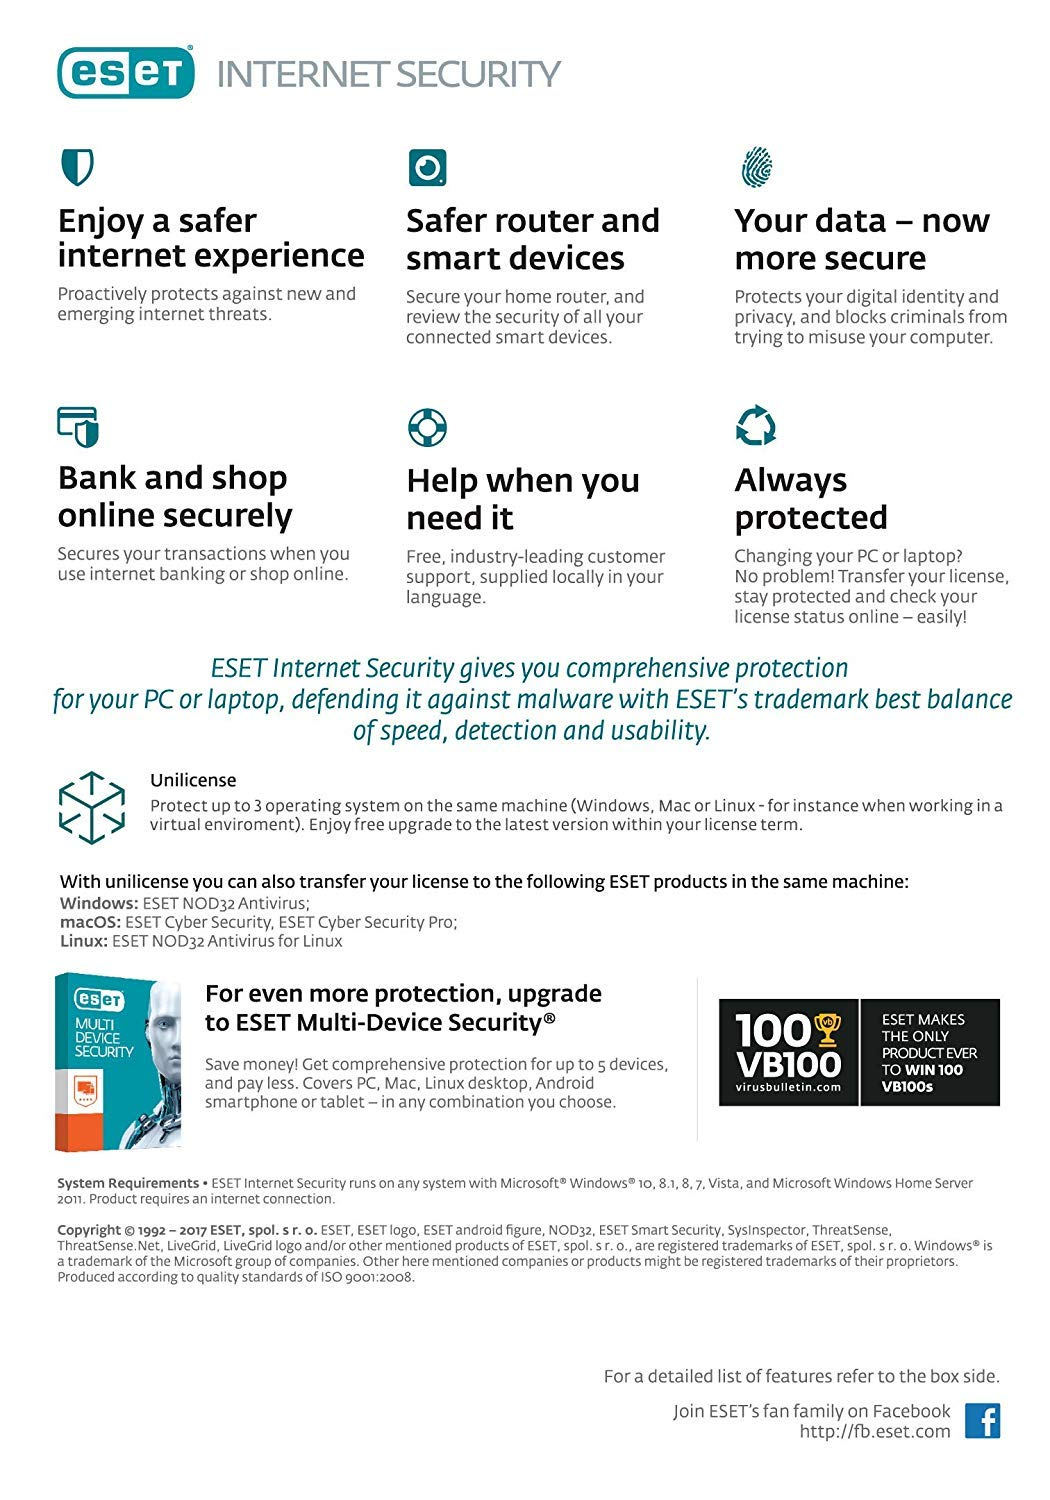 ESET Internet Security 2019 | 3 PC's | 2 5 Years Subscription | PC